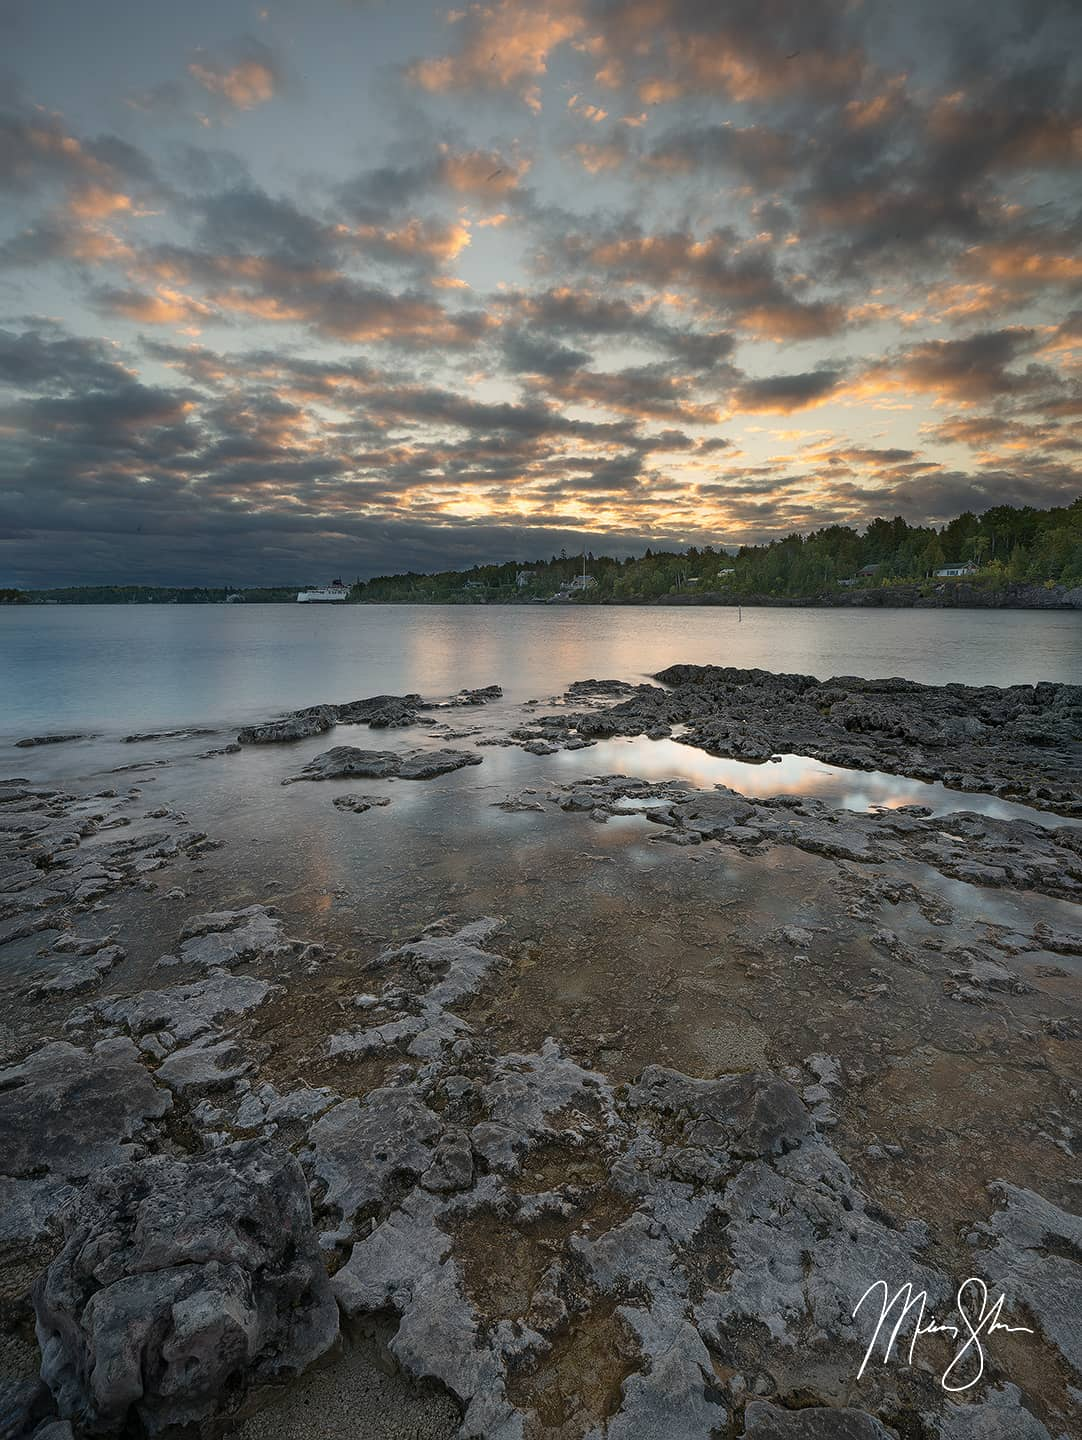 Open edition fine art print of Tobermory Sunrise from Mickey Shannon Photography. Location: Tobermory, Ontario, Canada